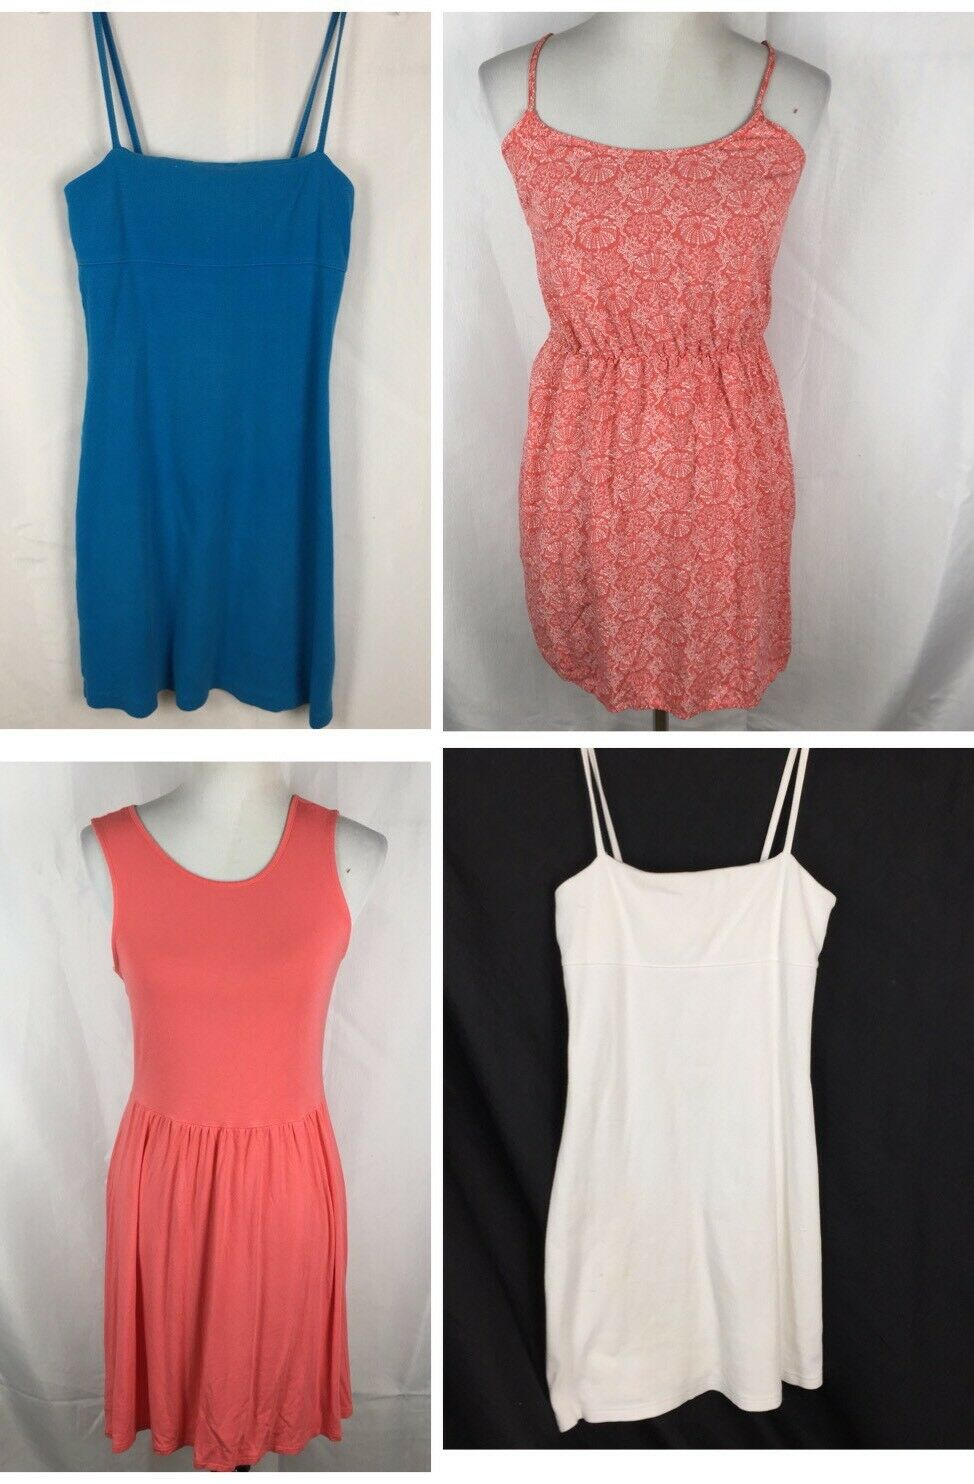 Lot 4 Womens Small S Dresses Includes Moda International Old Navy